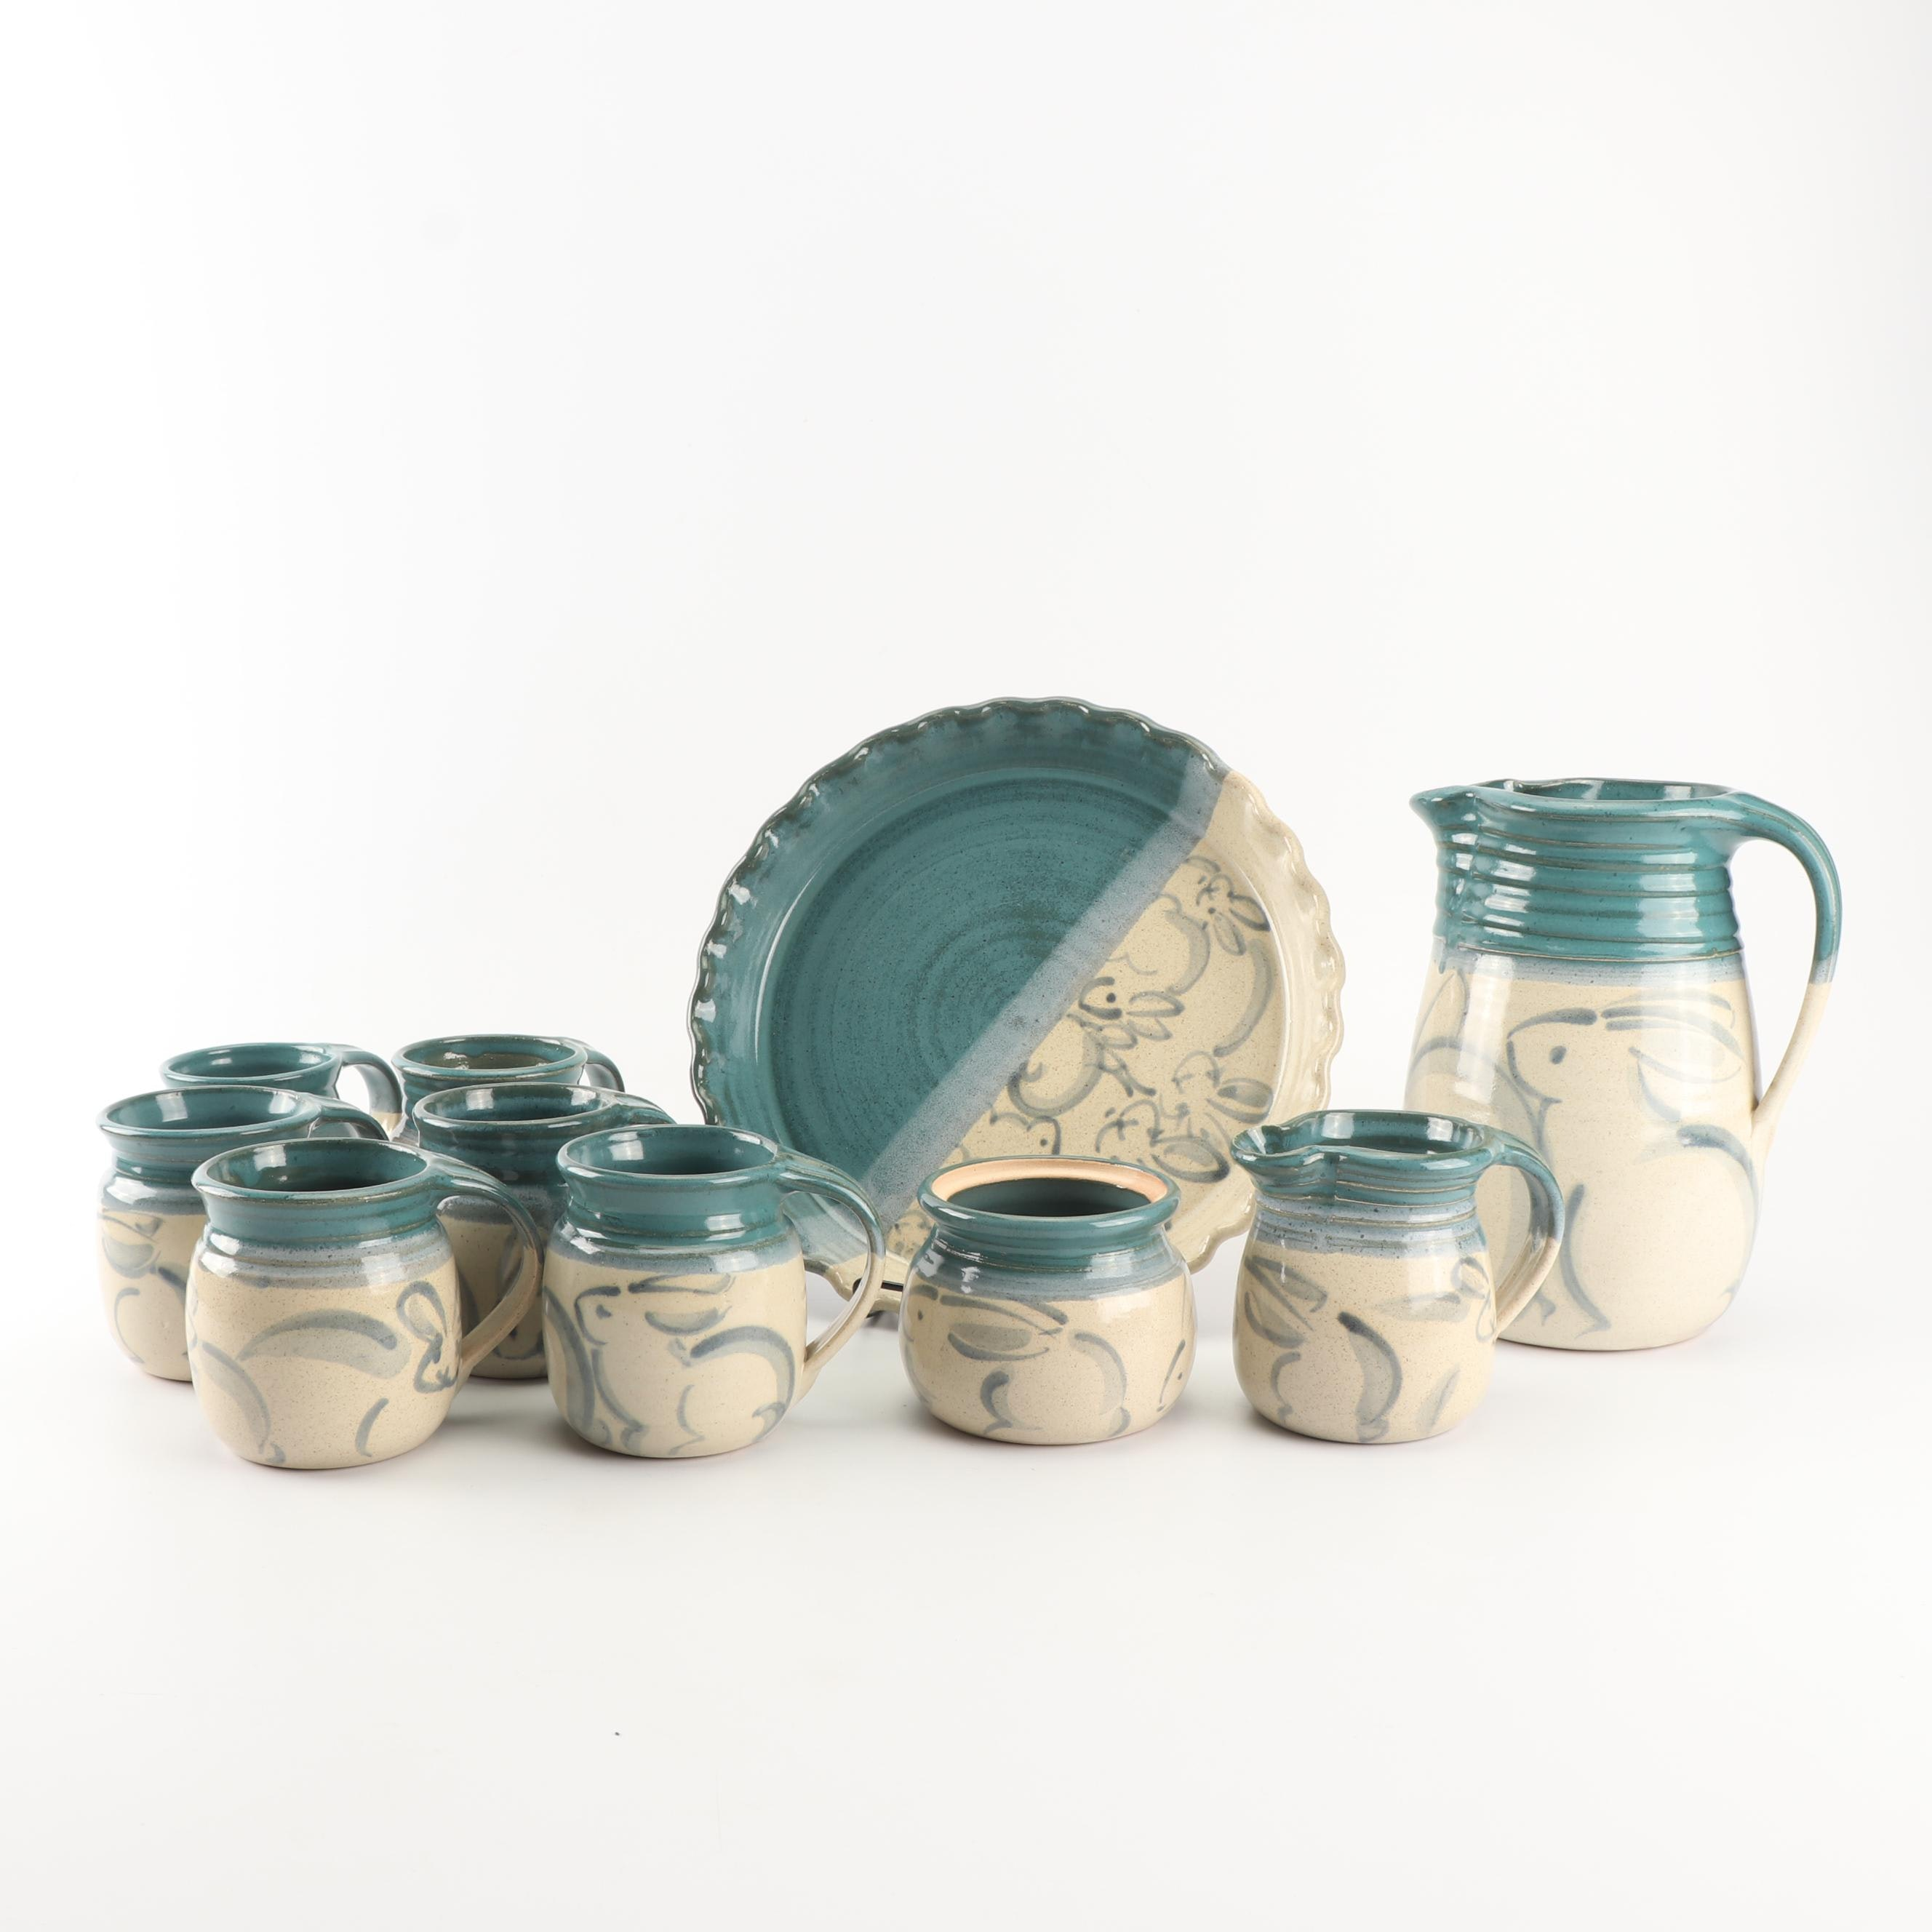 Ann Gleason Wheel Thrown Stoneware Serveware